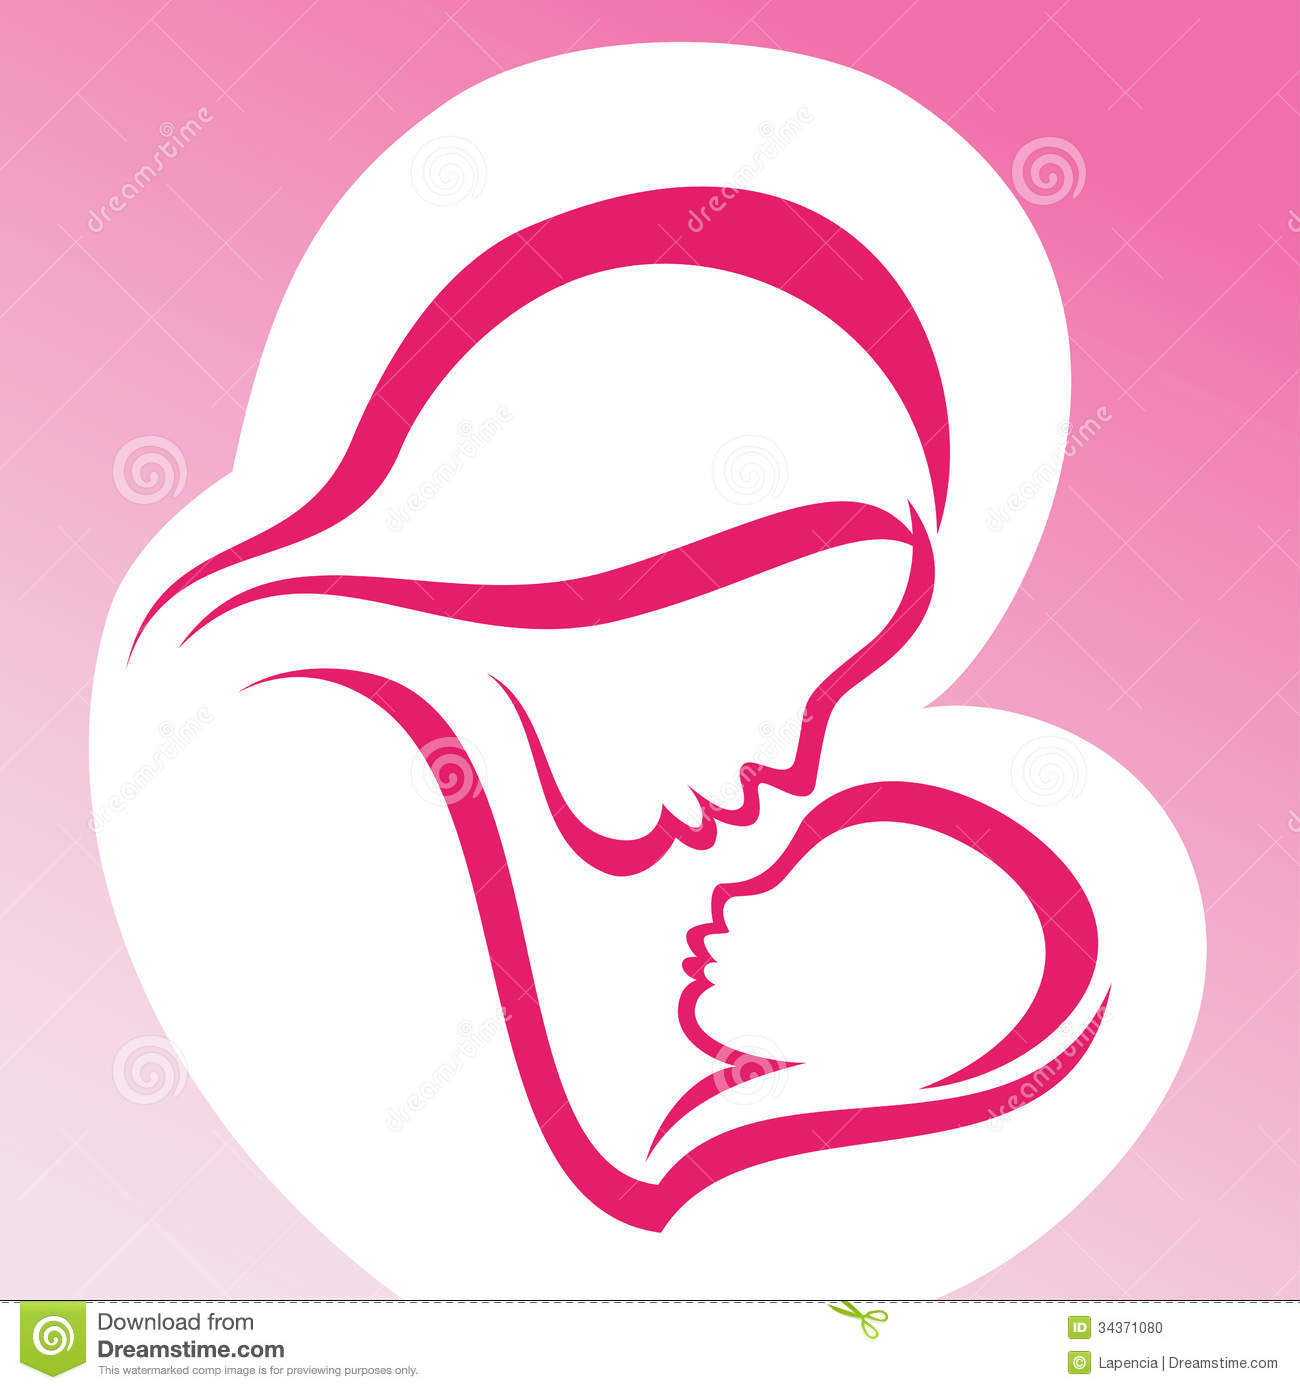 Child symbols clipart royalty free download Mother And Baby Clipart Free | Free download best Mother And Baby ... royalty free download